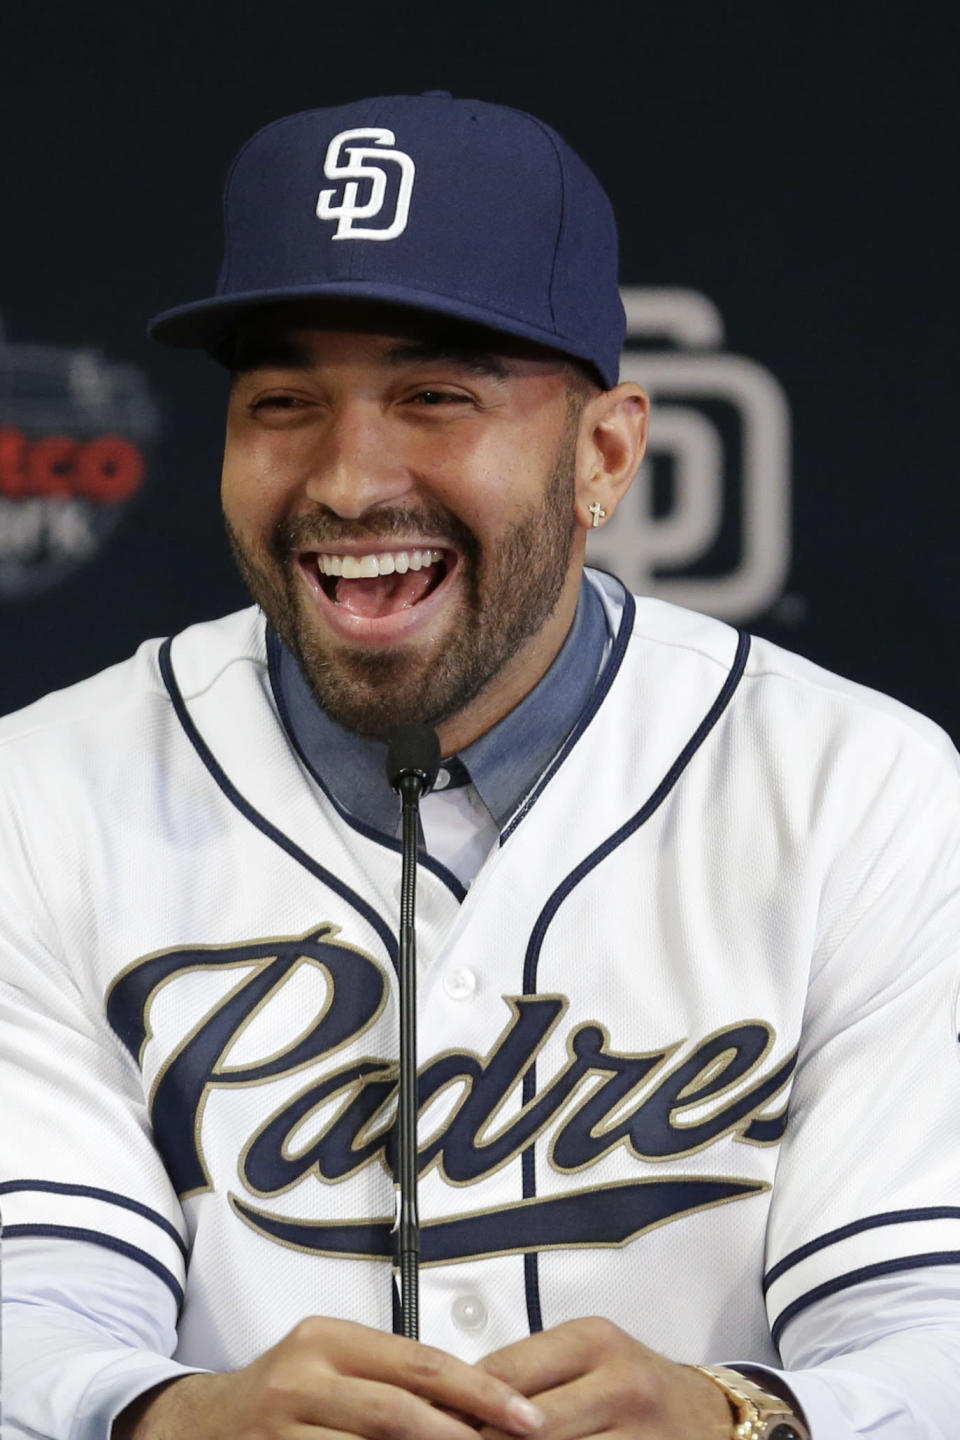 San Diego Padres outfielder Matt Kemp laughs during a news conference introducing him as part of the baseball club Friday, Dec. 19, 2014, in San Diego. The Padres deal for the former the Los Angeles Dodger was the first of three big deals by new Padres general manager A.J. Preller, who also has added outfielder Wil Myers, the 2013 AL Rookie of the Year, from Tampa Bay and All-Star catcher Derek Norris from Oakland. (AP Photo/Gregory Bull)